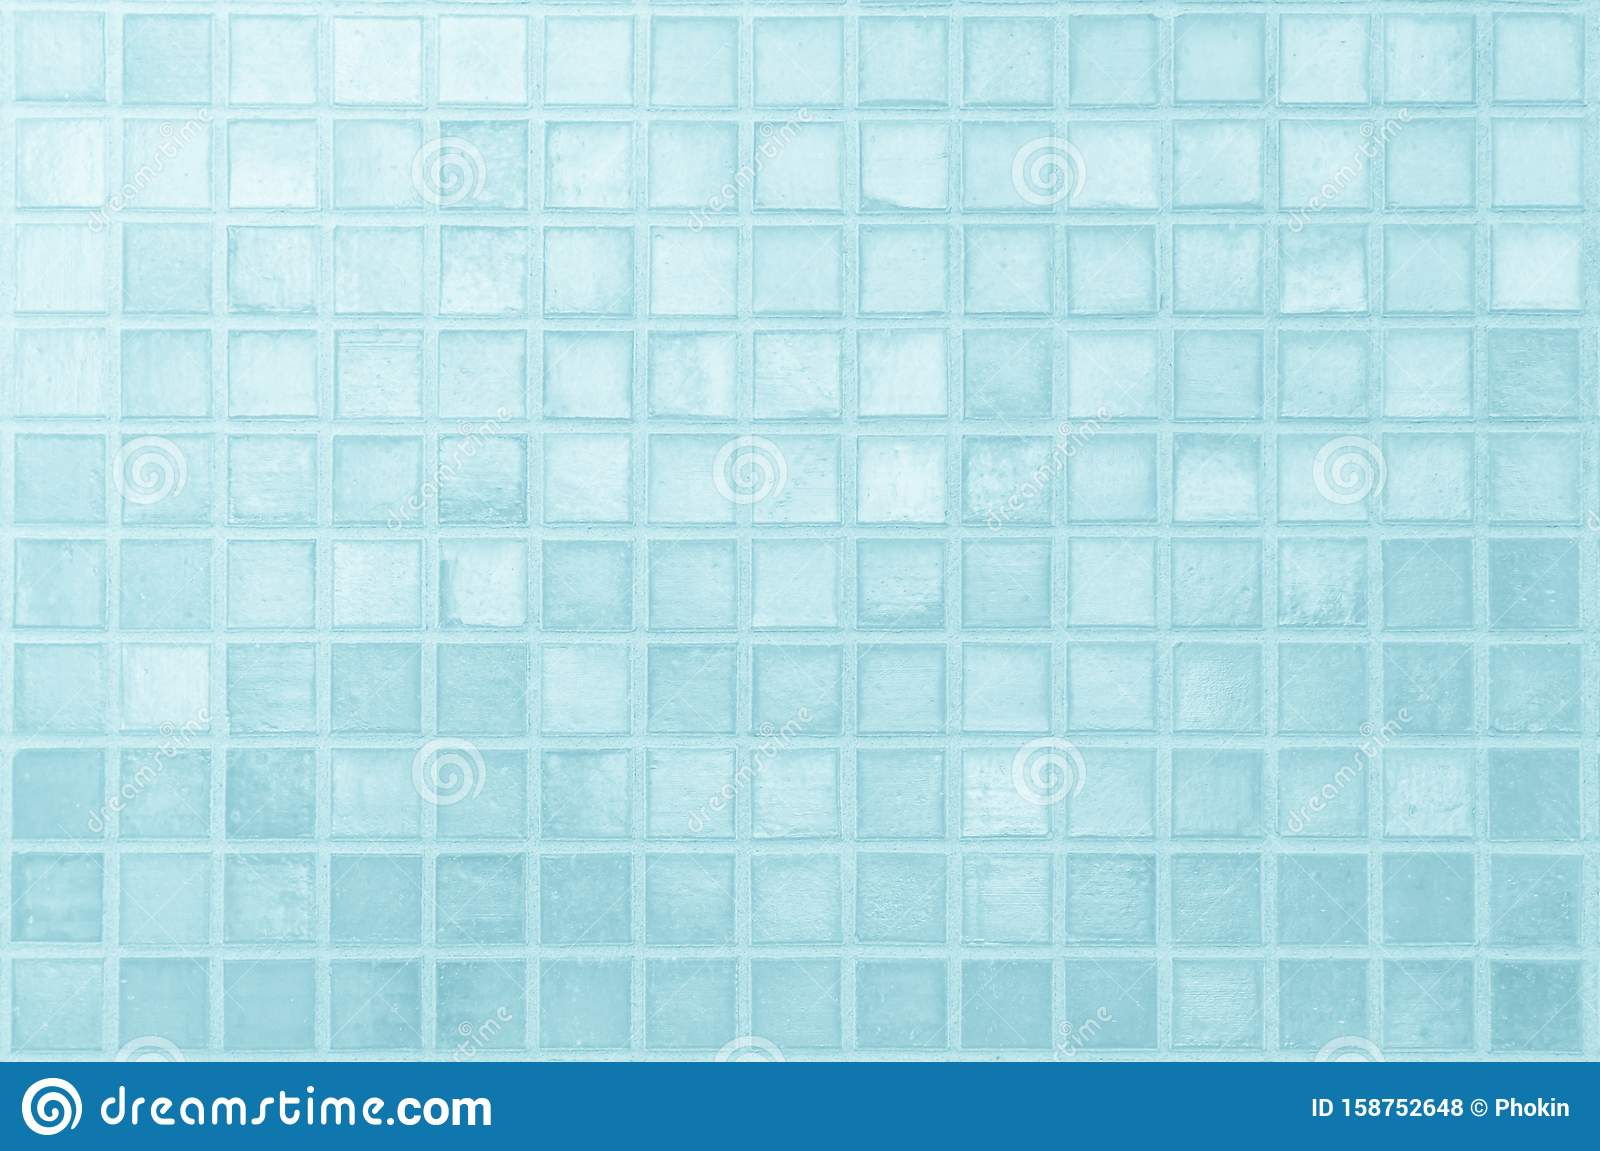 Blue Pastel Ceramic Wall And Floor Tiles Abstract ...